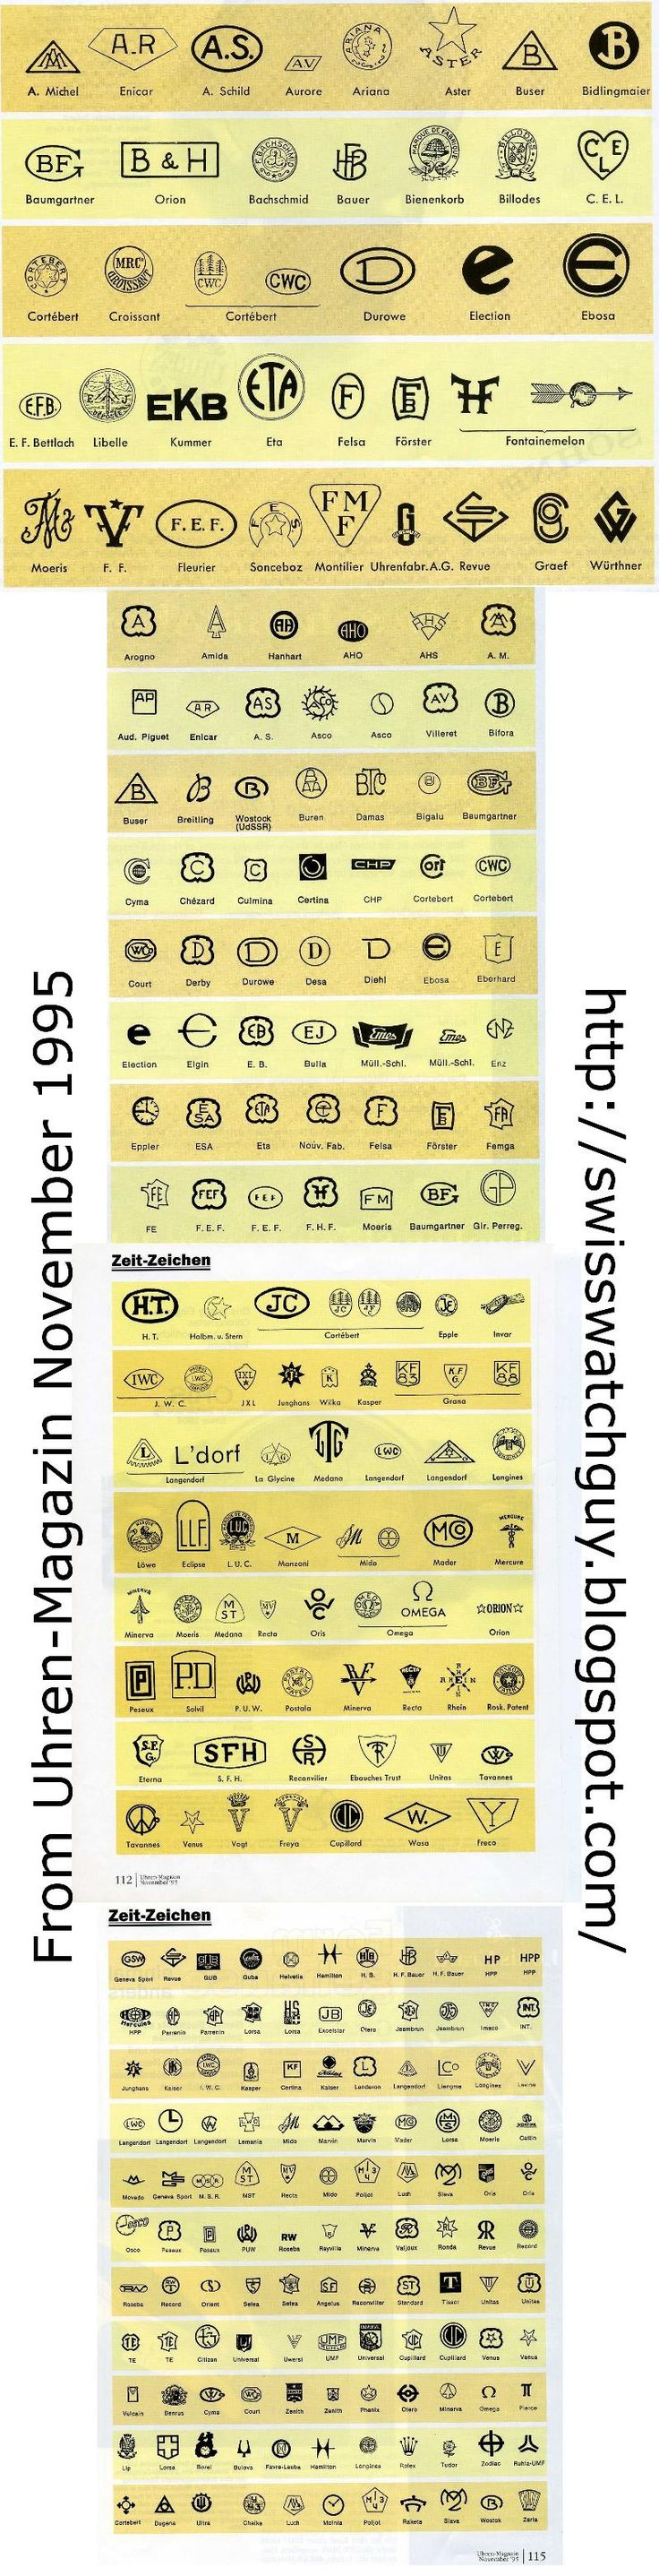 Graphic archive of Horological Logos and Hallmarks